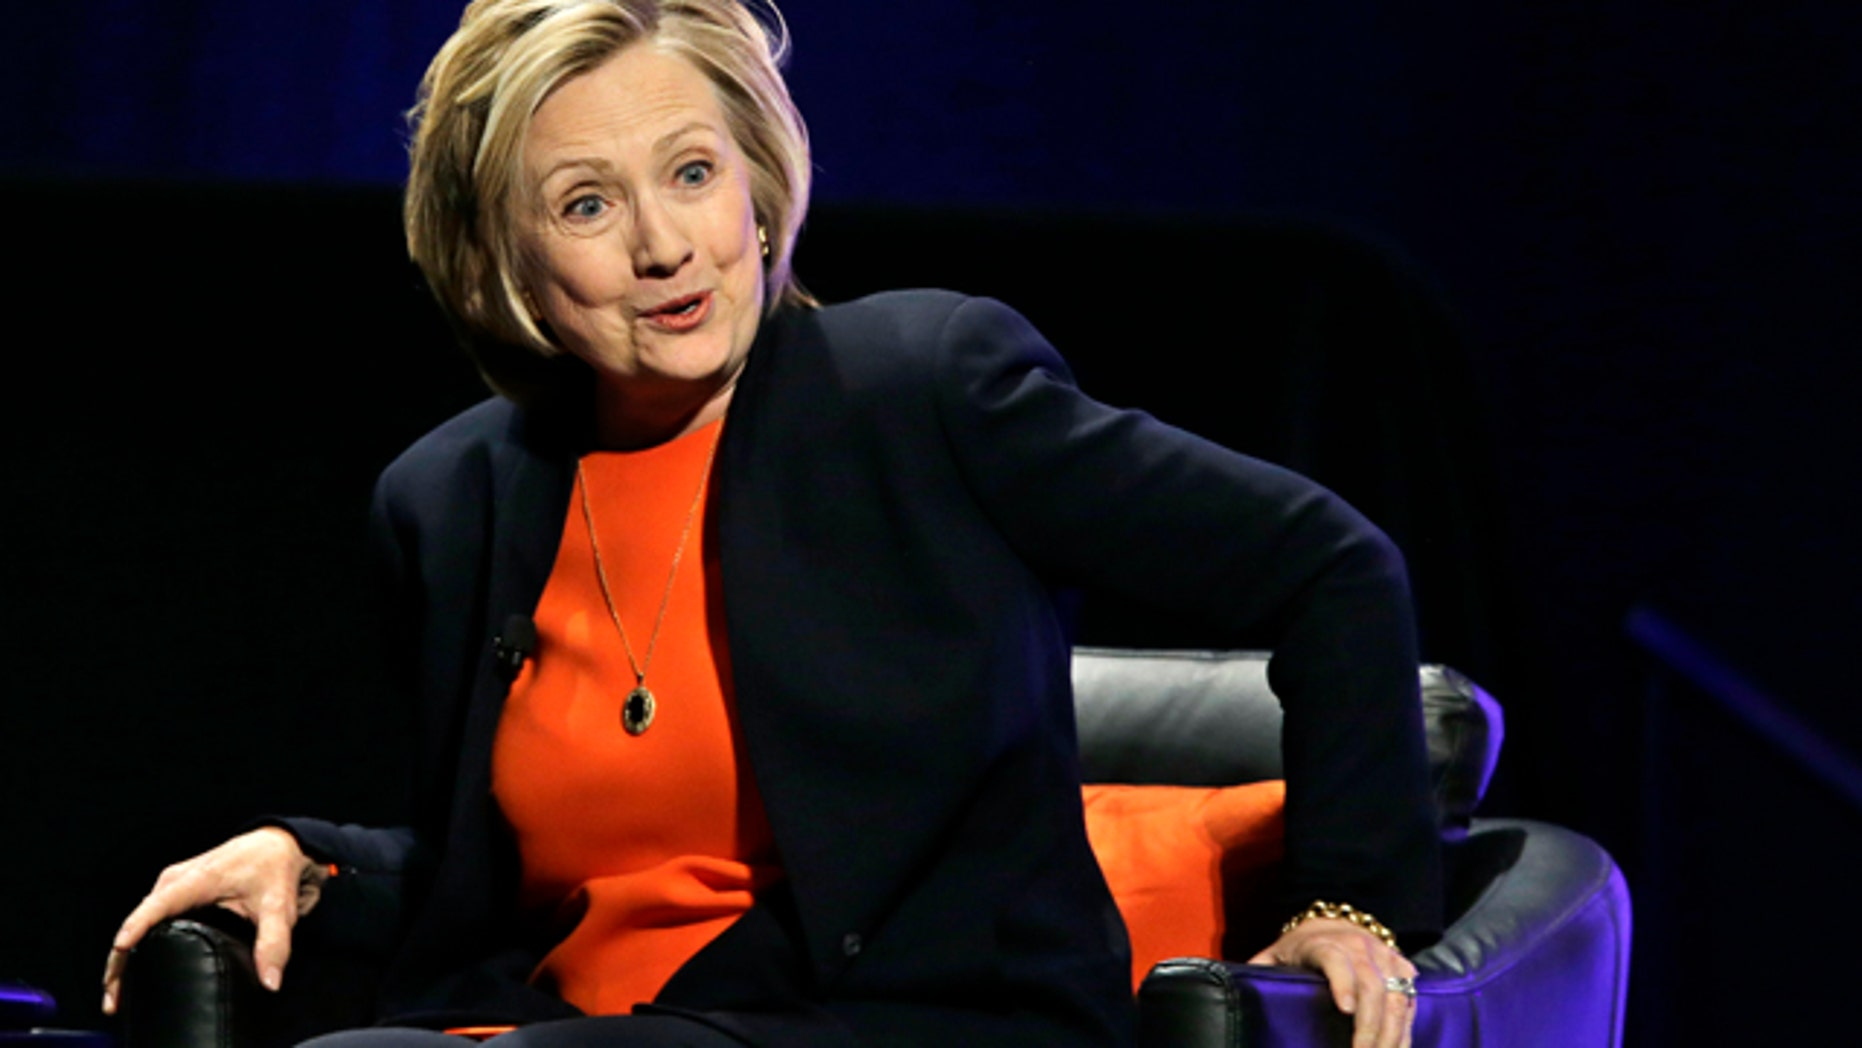 March 19, 2015: Former Secretary of State Hillary Rodham Clinton smiles as she answers a question after addressing around 3,000 summer camp and out of school time professionals at the American Camp Association and Tri State CAMP conference in Atlantic City, N.J. (AP Photo/Mel Evans)